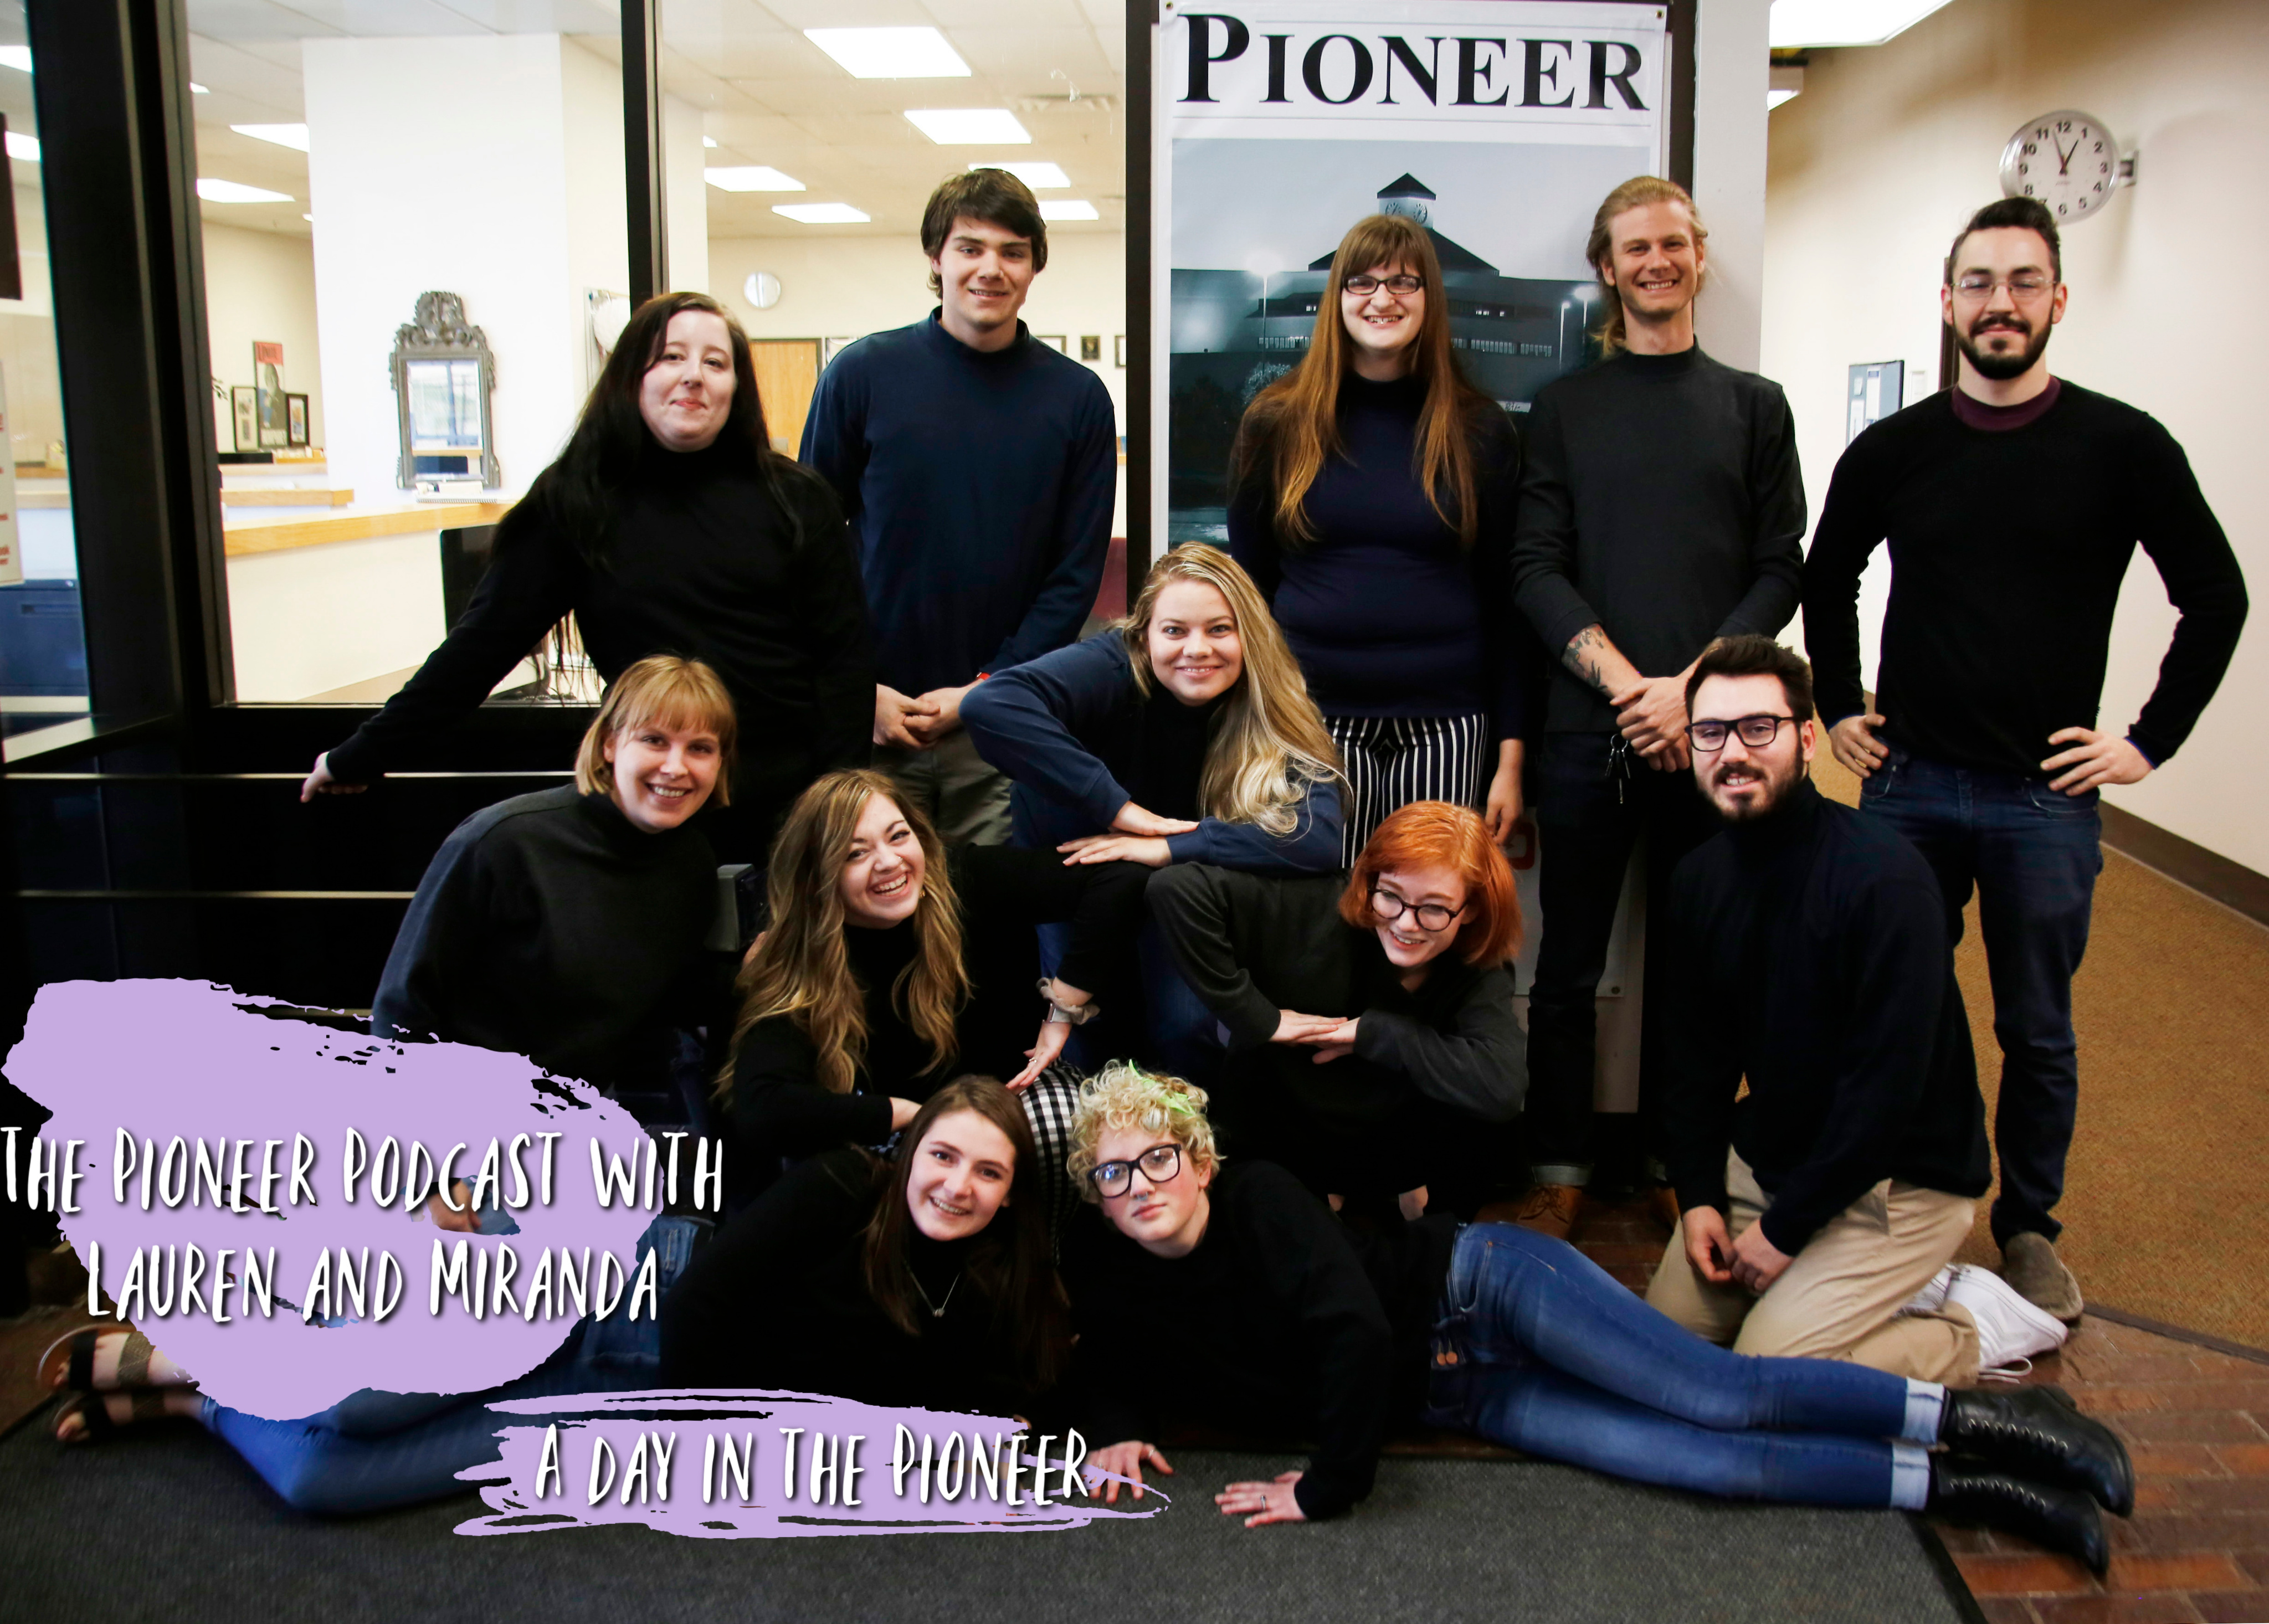 The Pioneer Podcast with Lauren and Miranda: A Day in the Pioneer